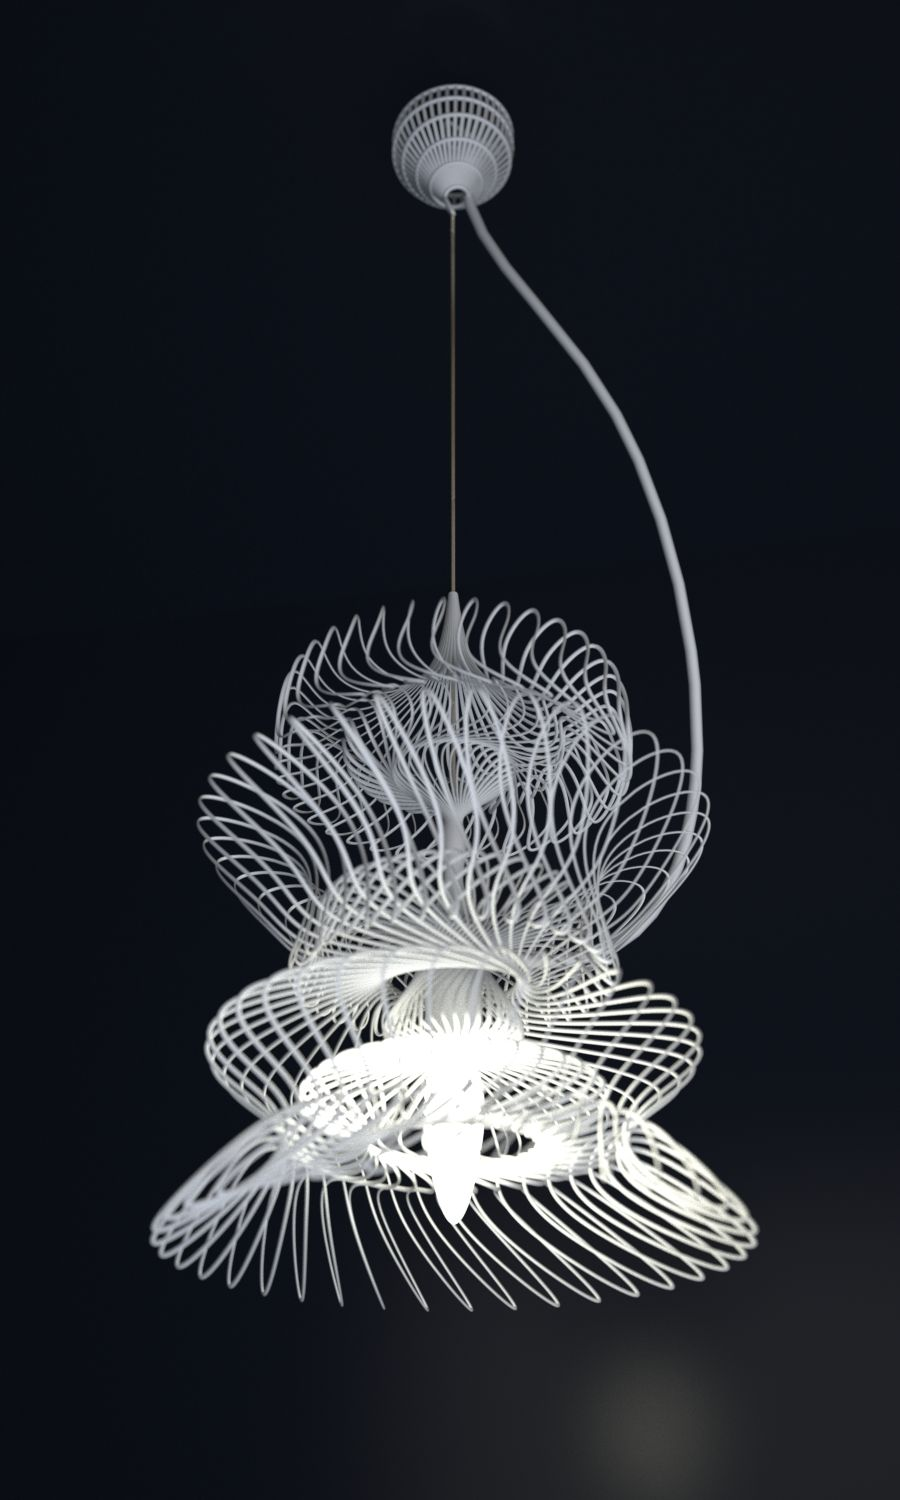 Salon Impression 3d Pin By Christophe Cousin On Impression 3d Luminaire Lumiere Design